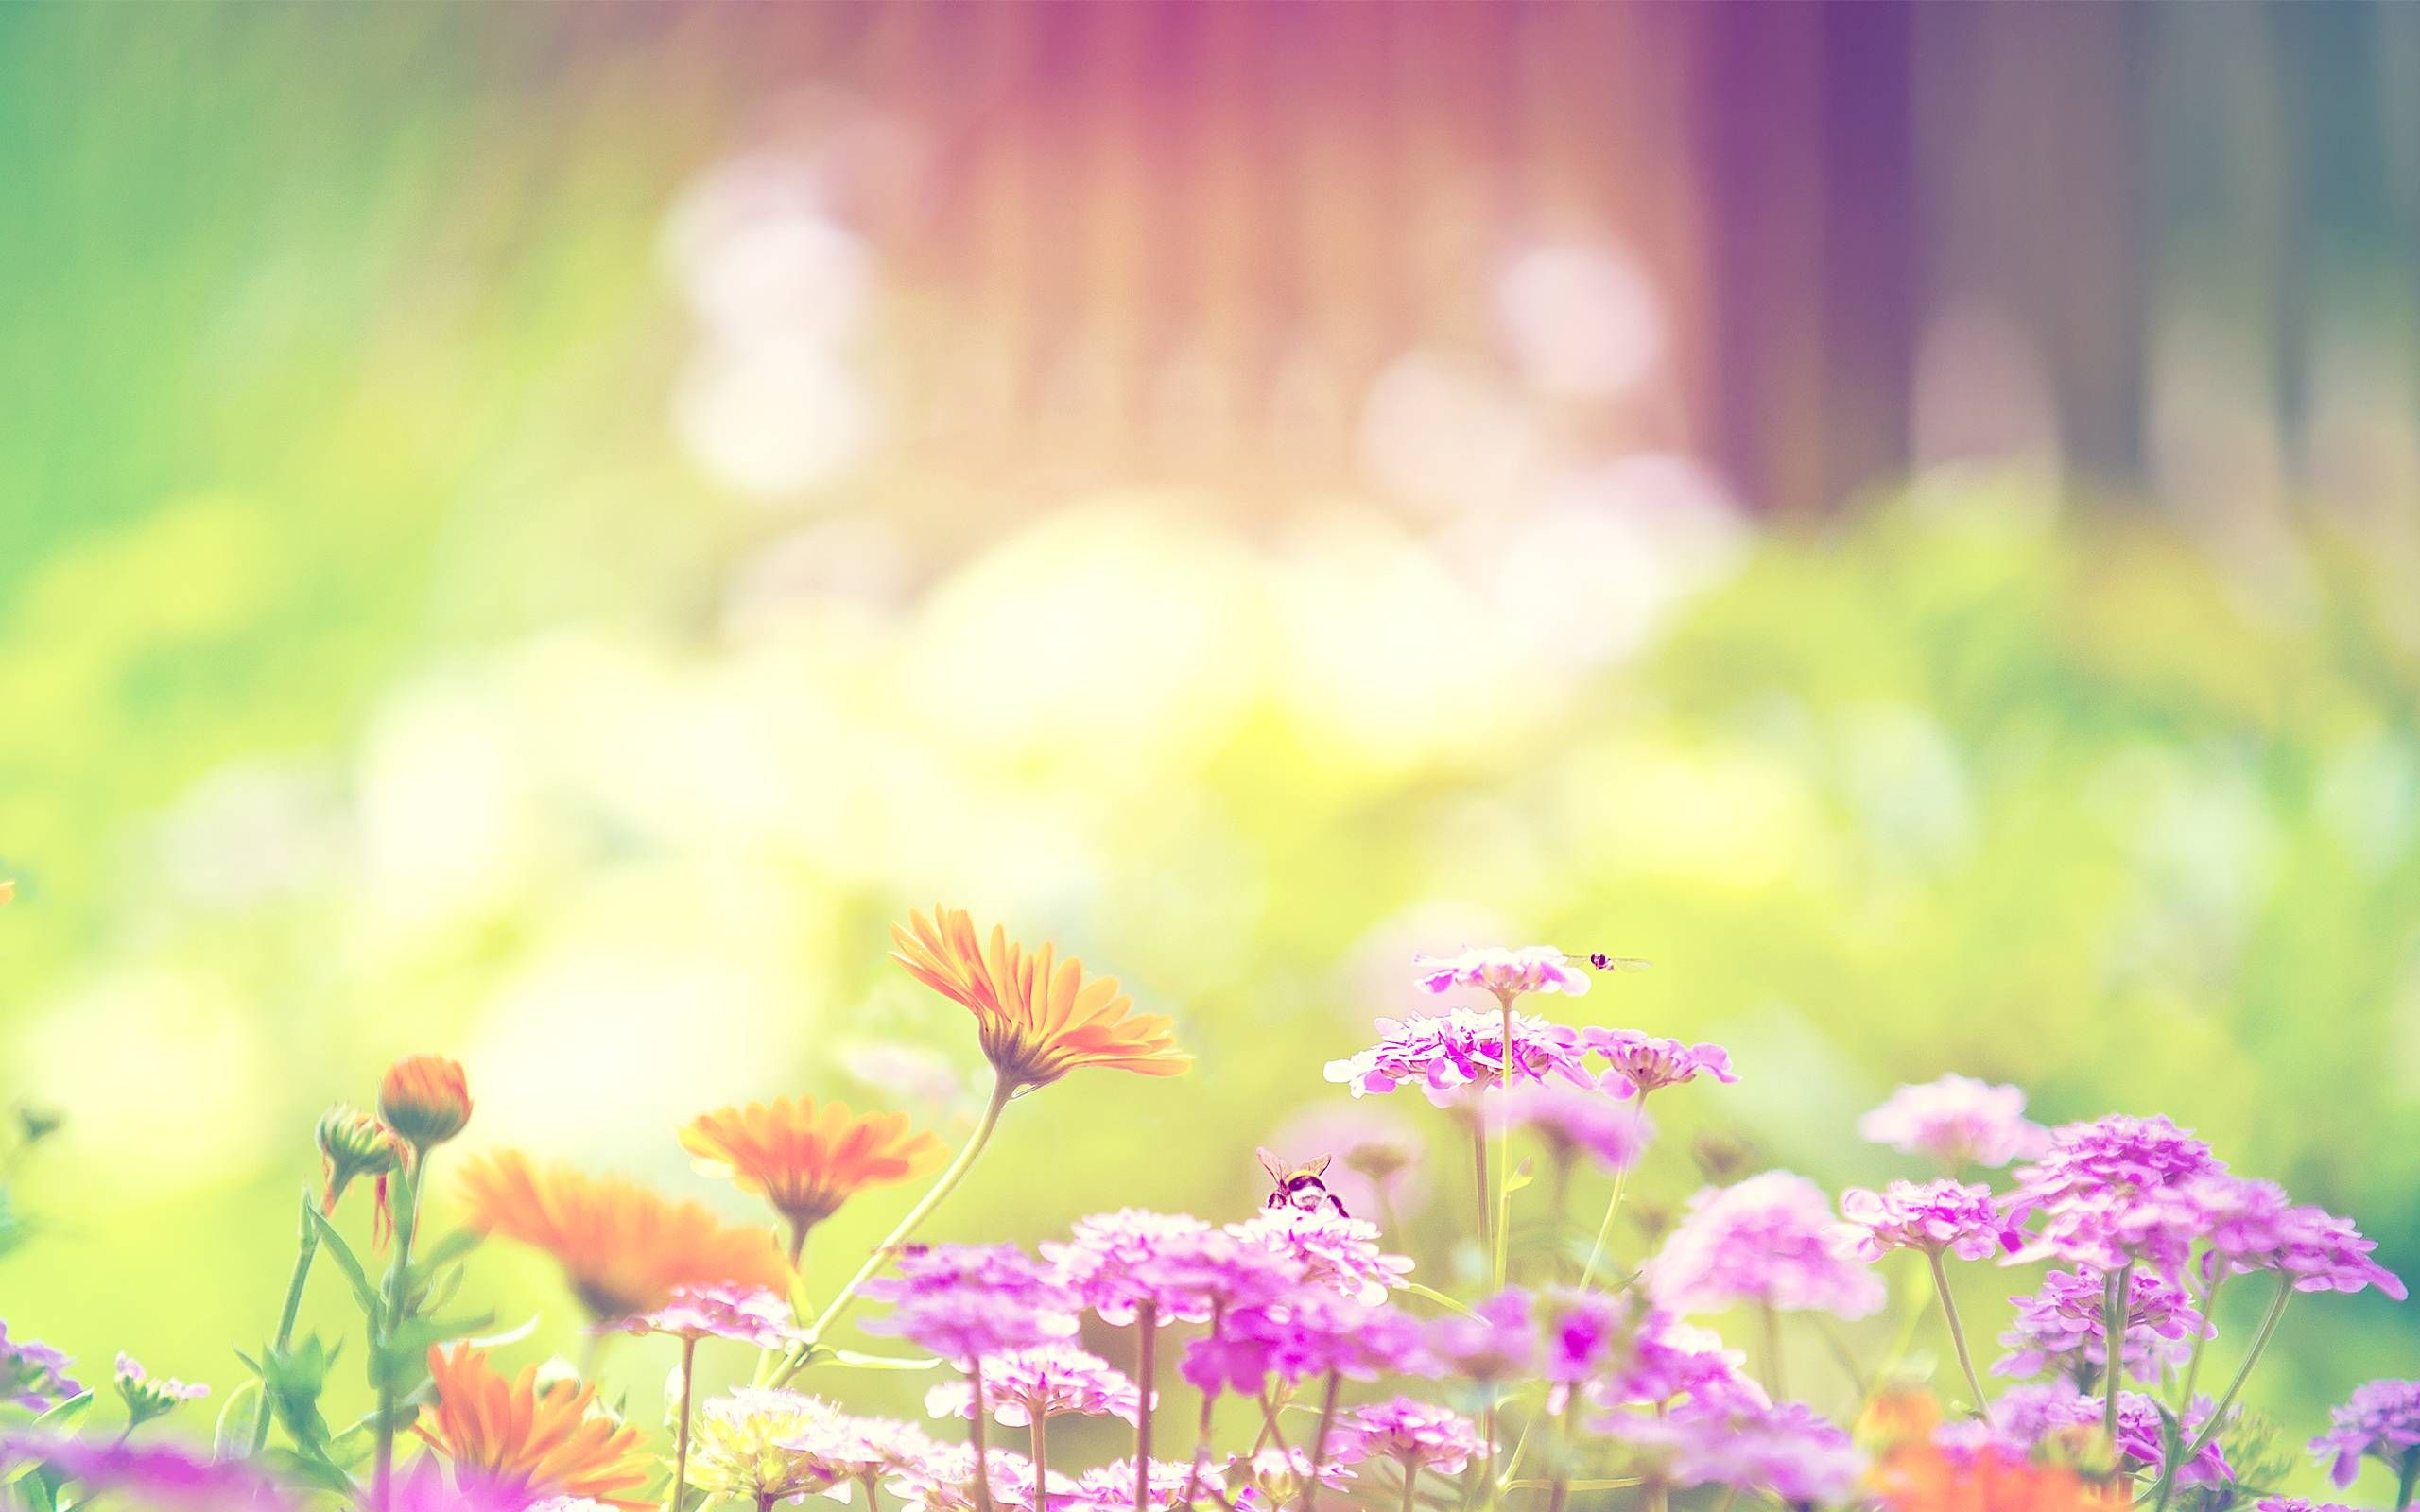 Hd wallpaper spring - Spring Wallpaper Spring Nature Wallpapers In Jpg Format For Free